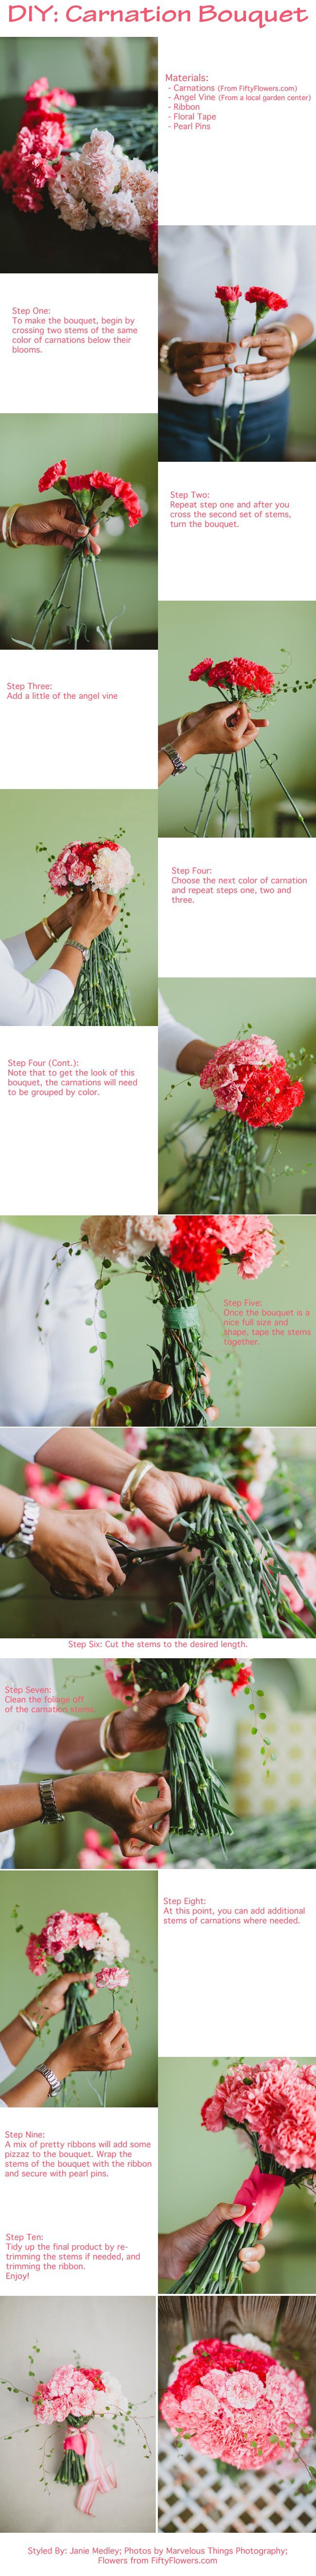 DIY Carnation Bouquet - Learn How To create your own gorgeous wedding bouquet using wholesale carnations from http://FiftyFlowers.com